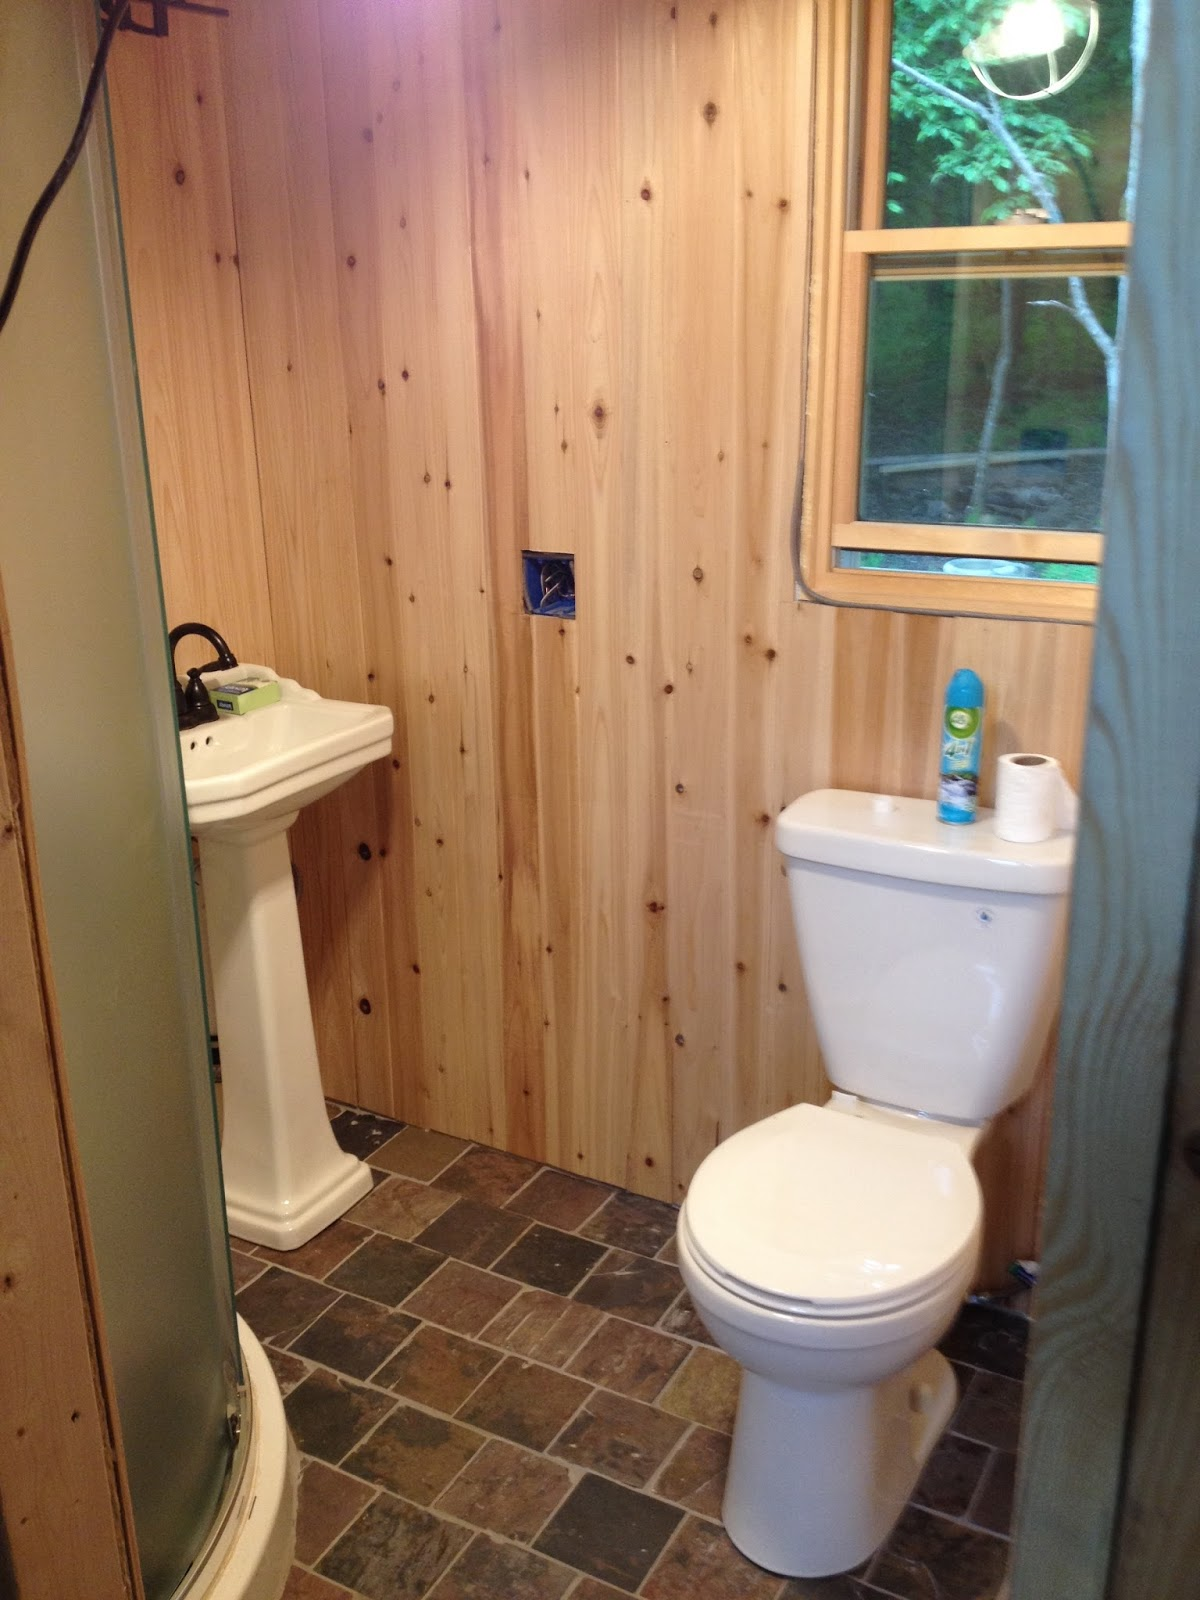 Tongue and groove for bathrooms - Bathroom Plumbing And Cedar Tongue And Groove Is In Just Some Wood Trim Towel Racks And Cosmetic Stuff To Finish In Here